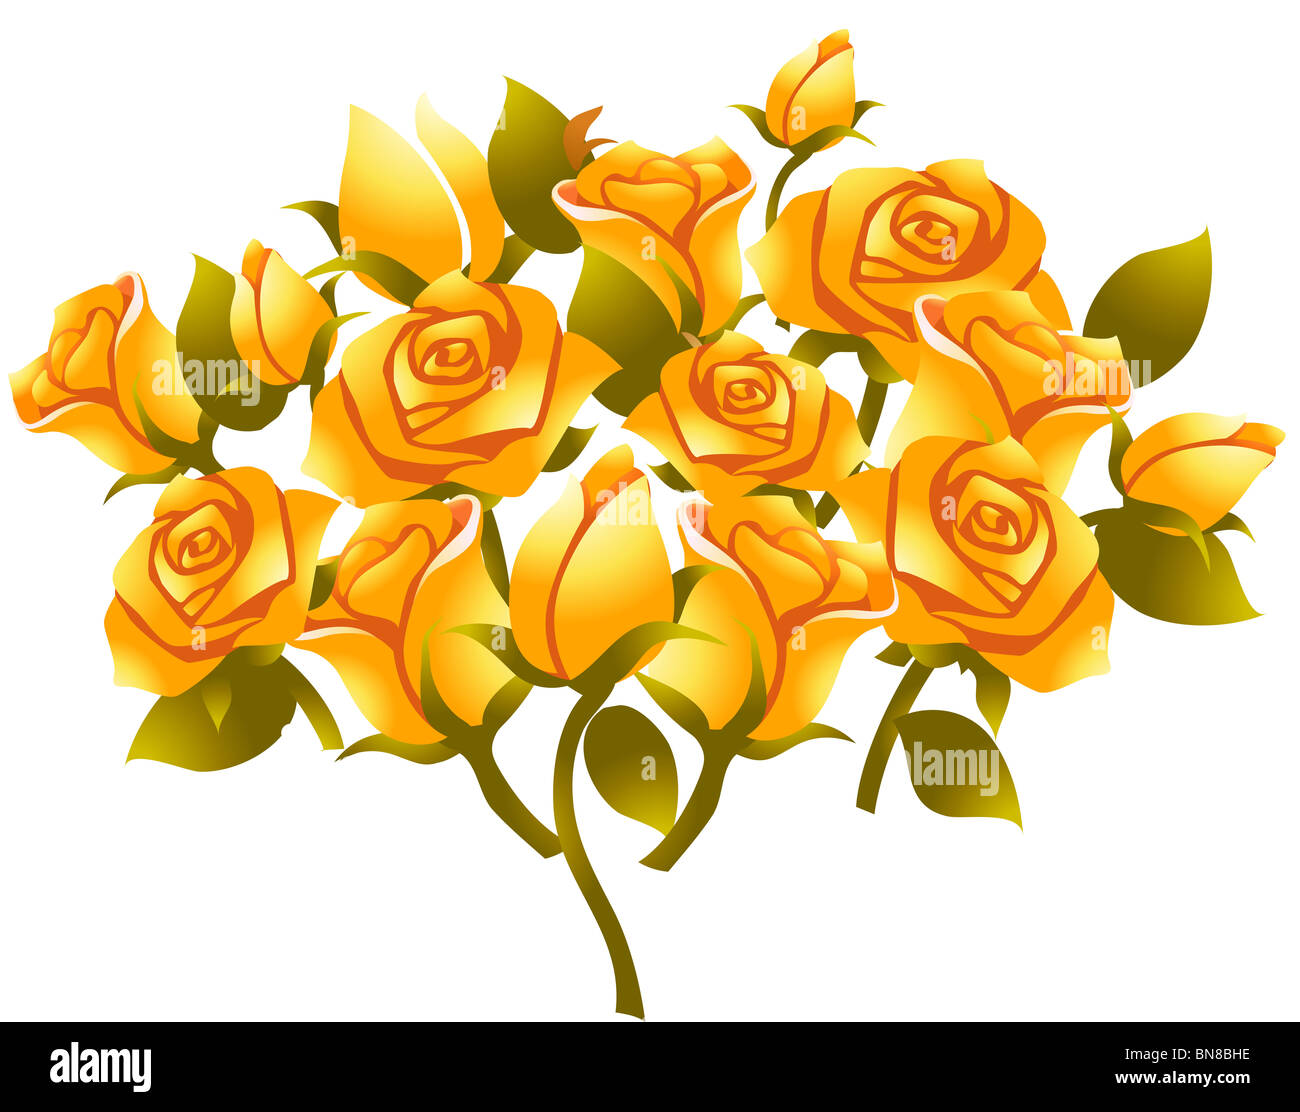 illustration drawing of yellow rose flower in white